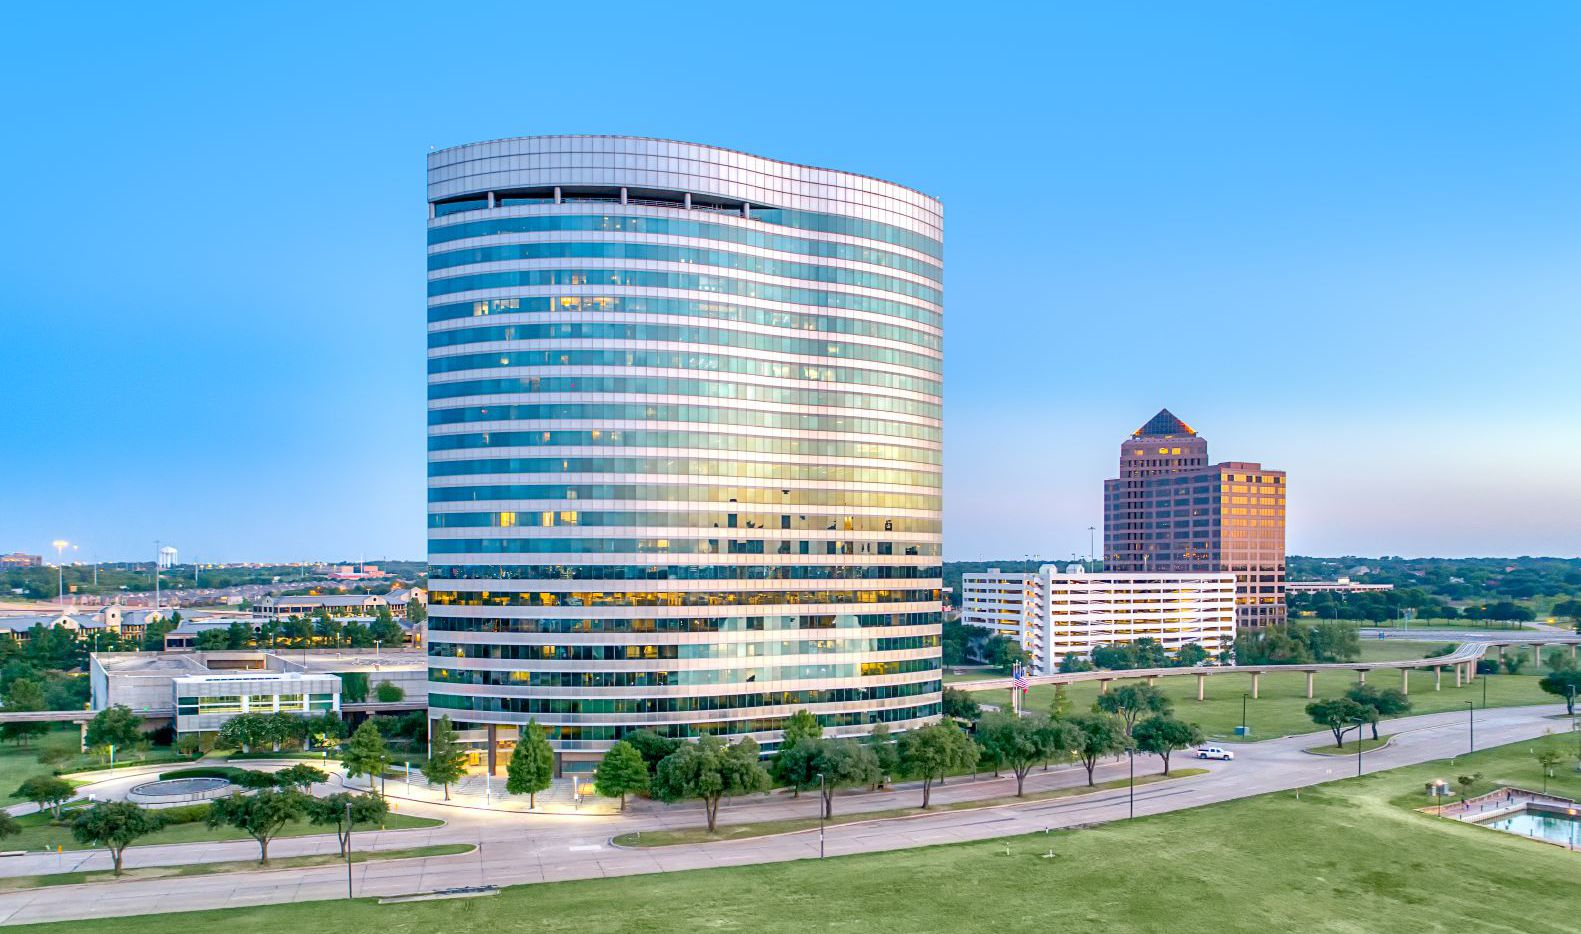 The 600 Las Colinas tower is near Carpenter Freeway in Irving.